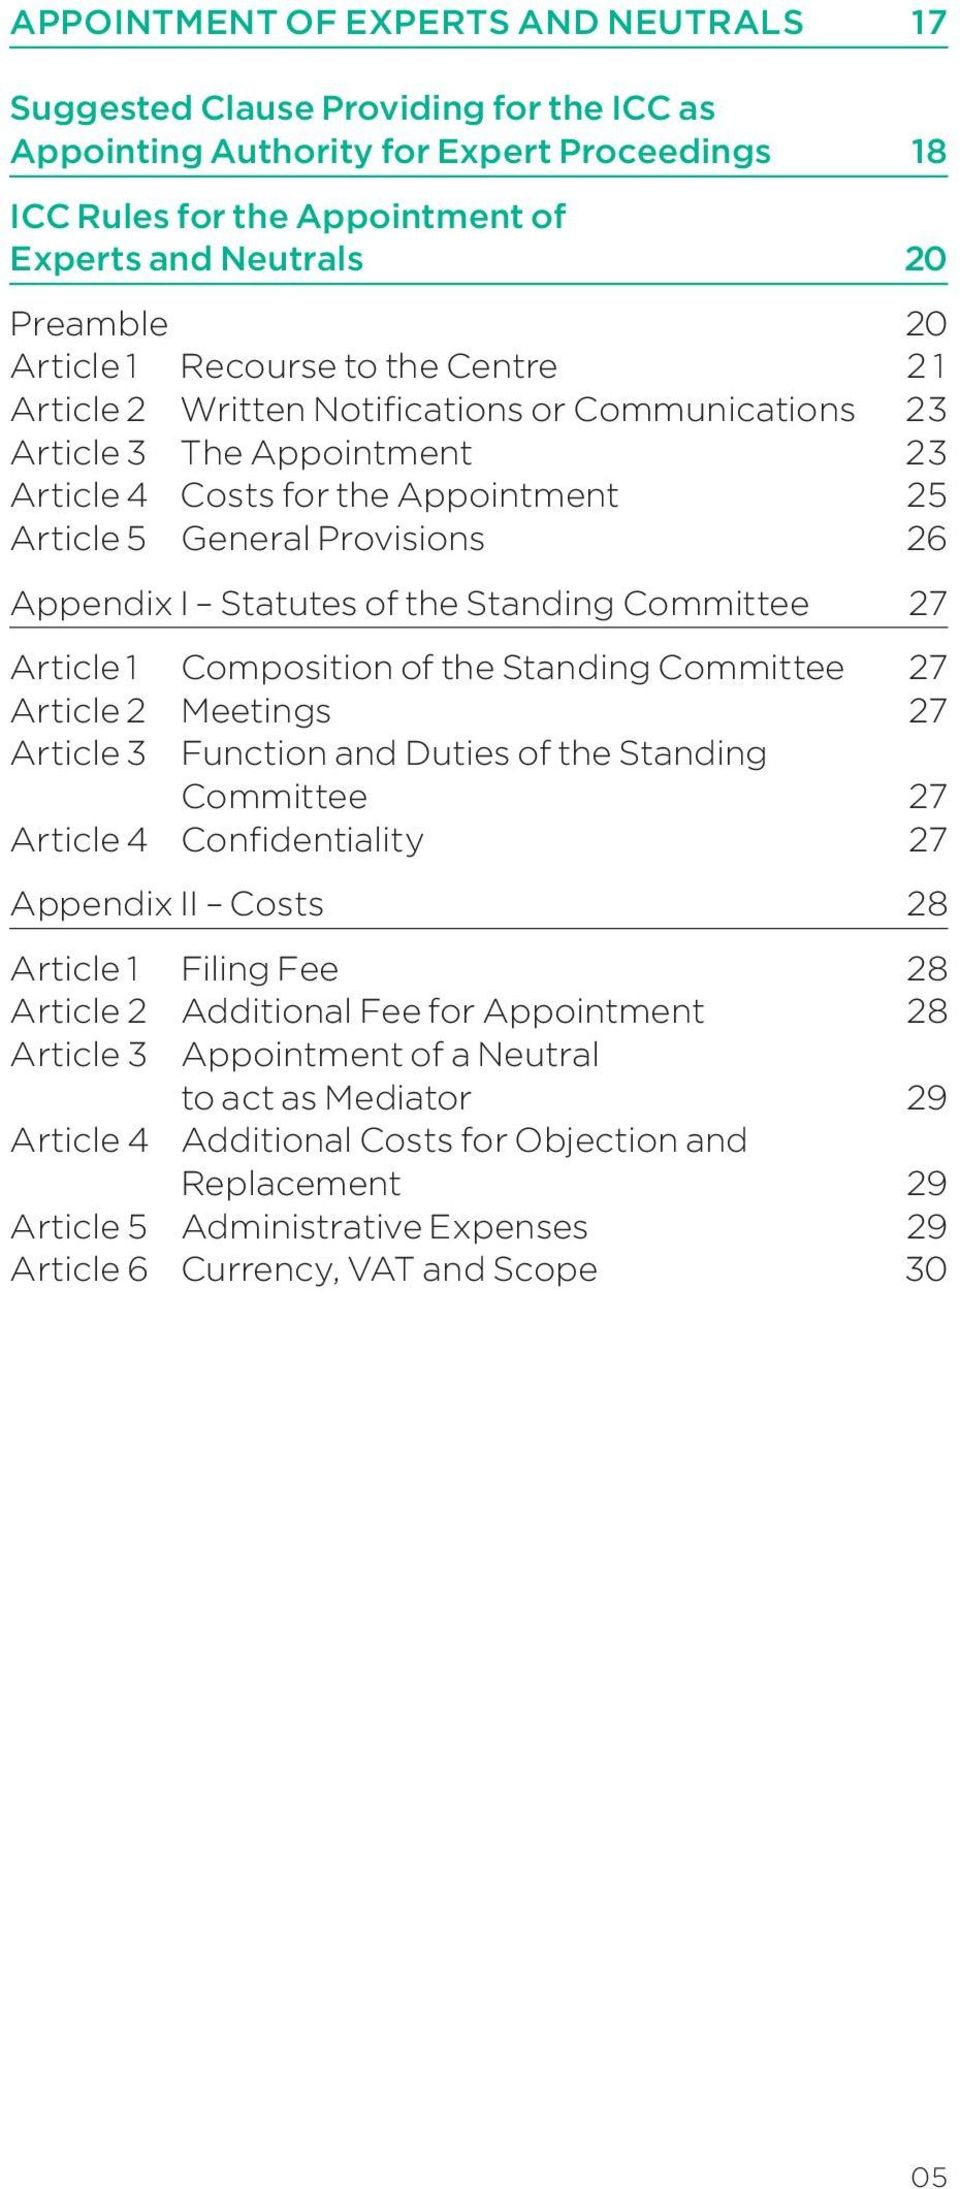 I Statutes of the Standing Committee 27 Article 1 Composition of the Standing Committee 27 Article 2 Meetings 27 Article 3 Function and Duties of the Standing Committee 27 Article 4 Confidentiality